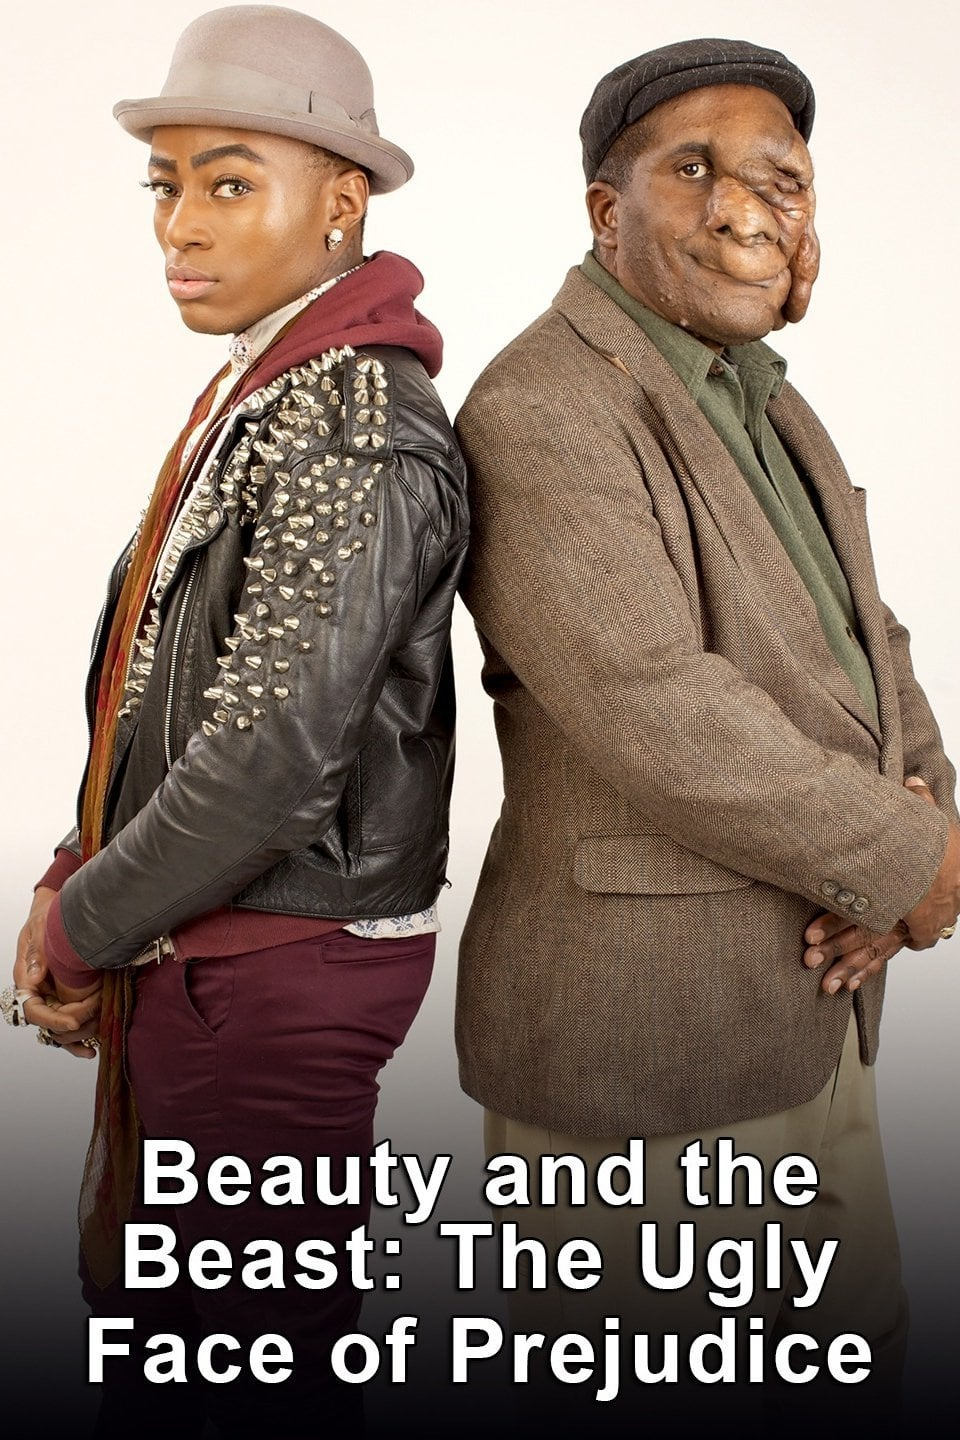 Beauty and the Beast: The Ugly Face of Prejudice (2011)